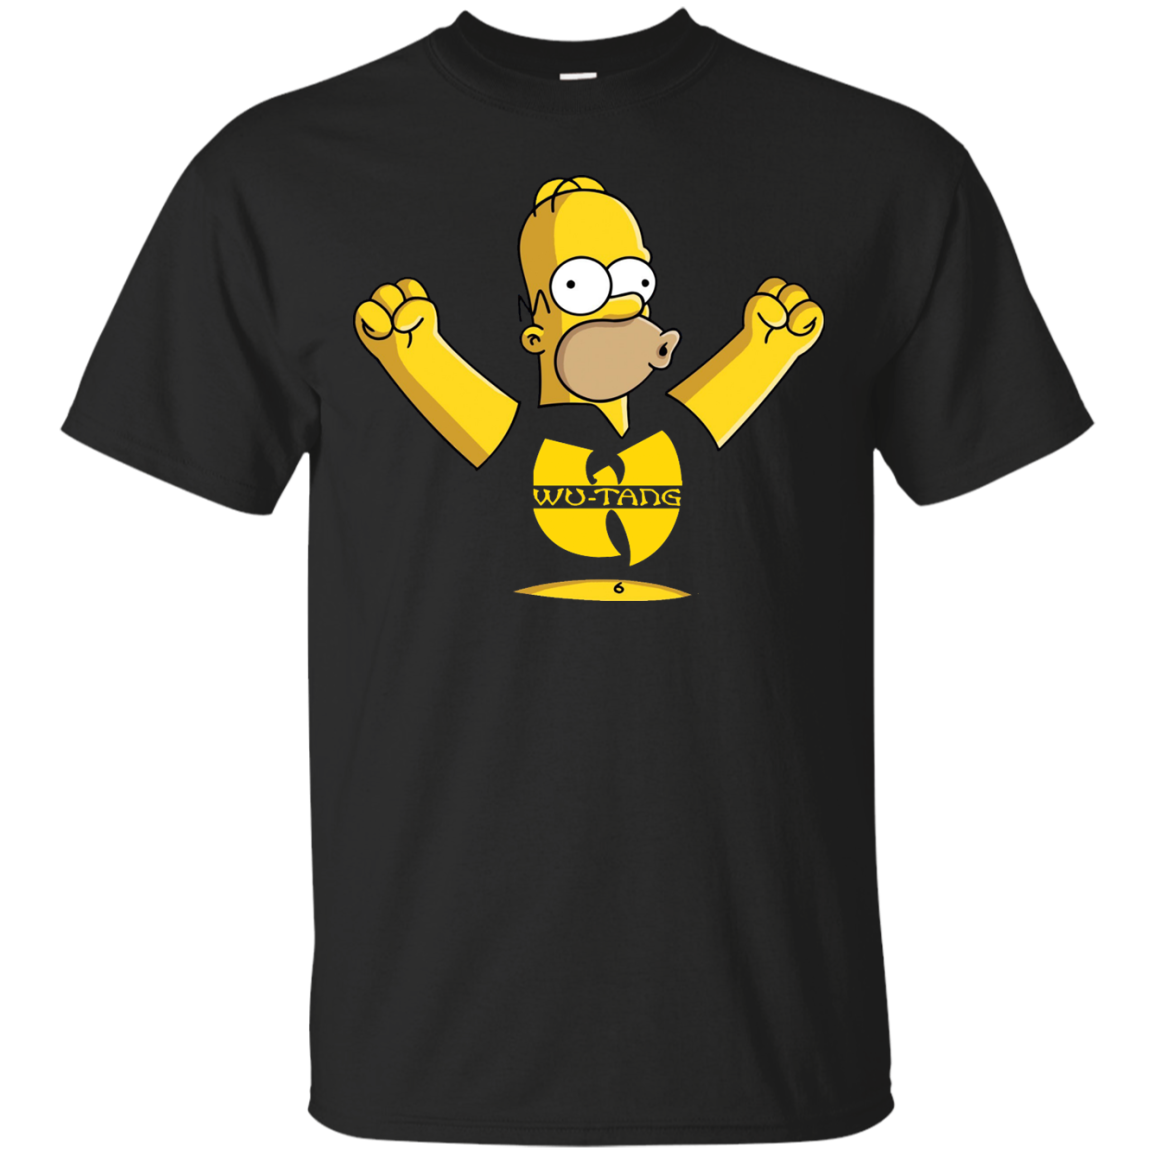 Wu Tang Clan Lovers Shirt,Homer Simpson T shirt,Tank top & Hoodies